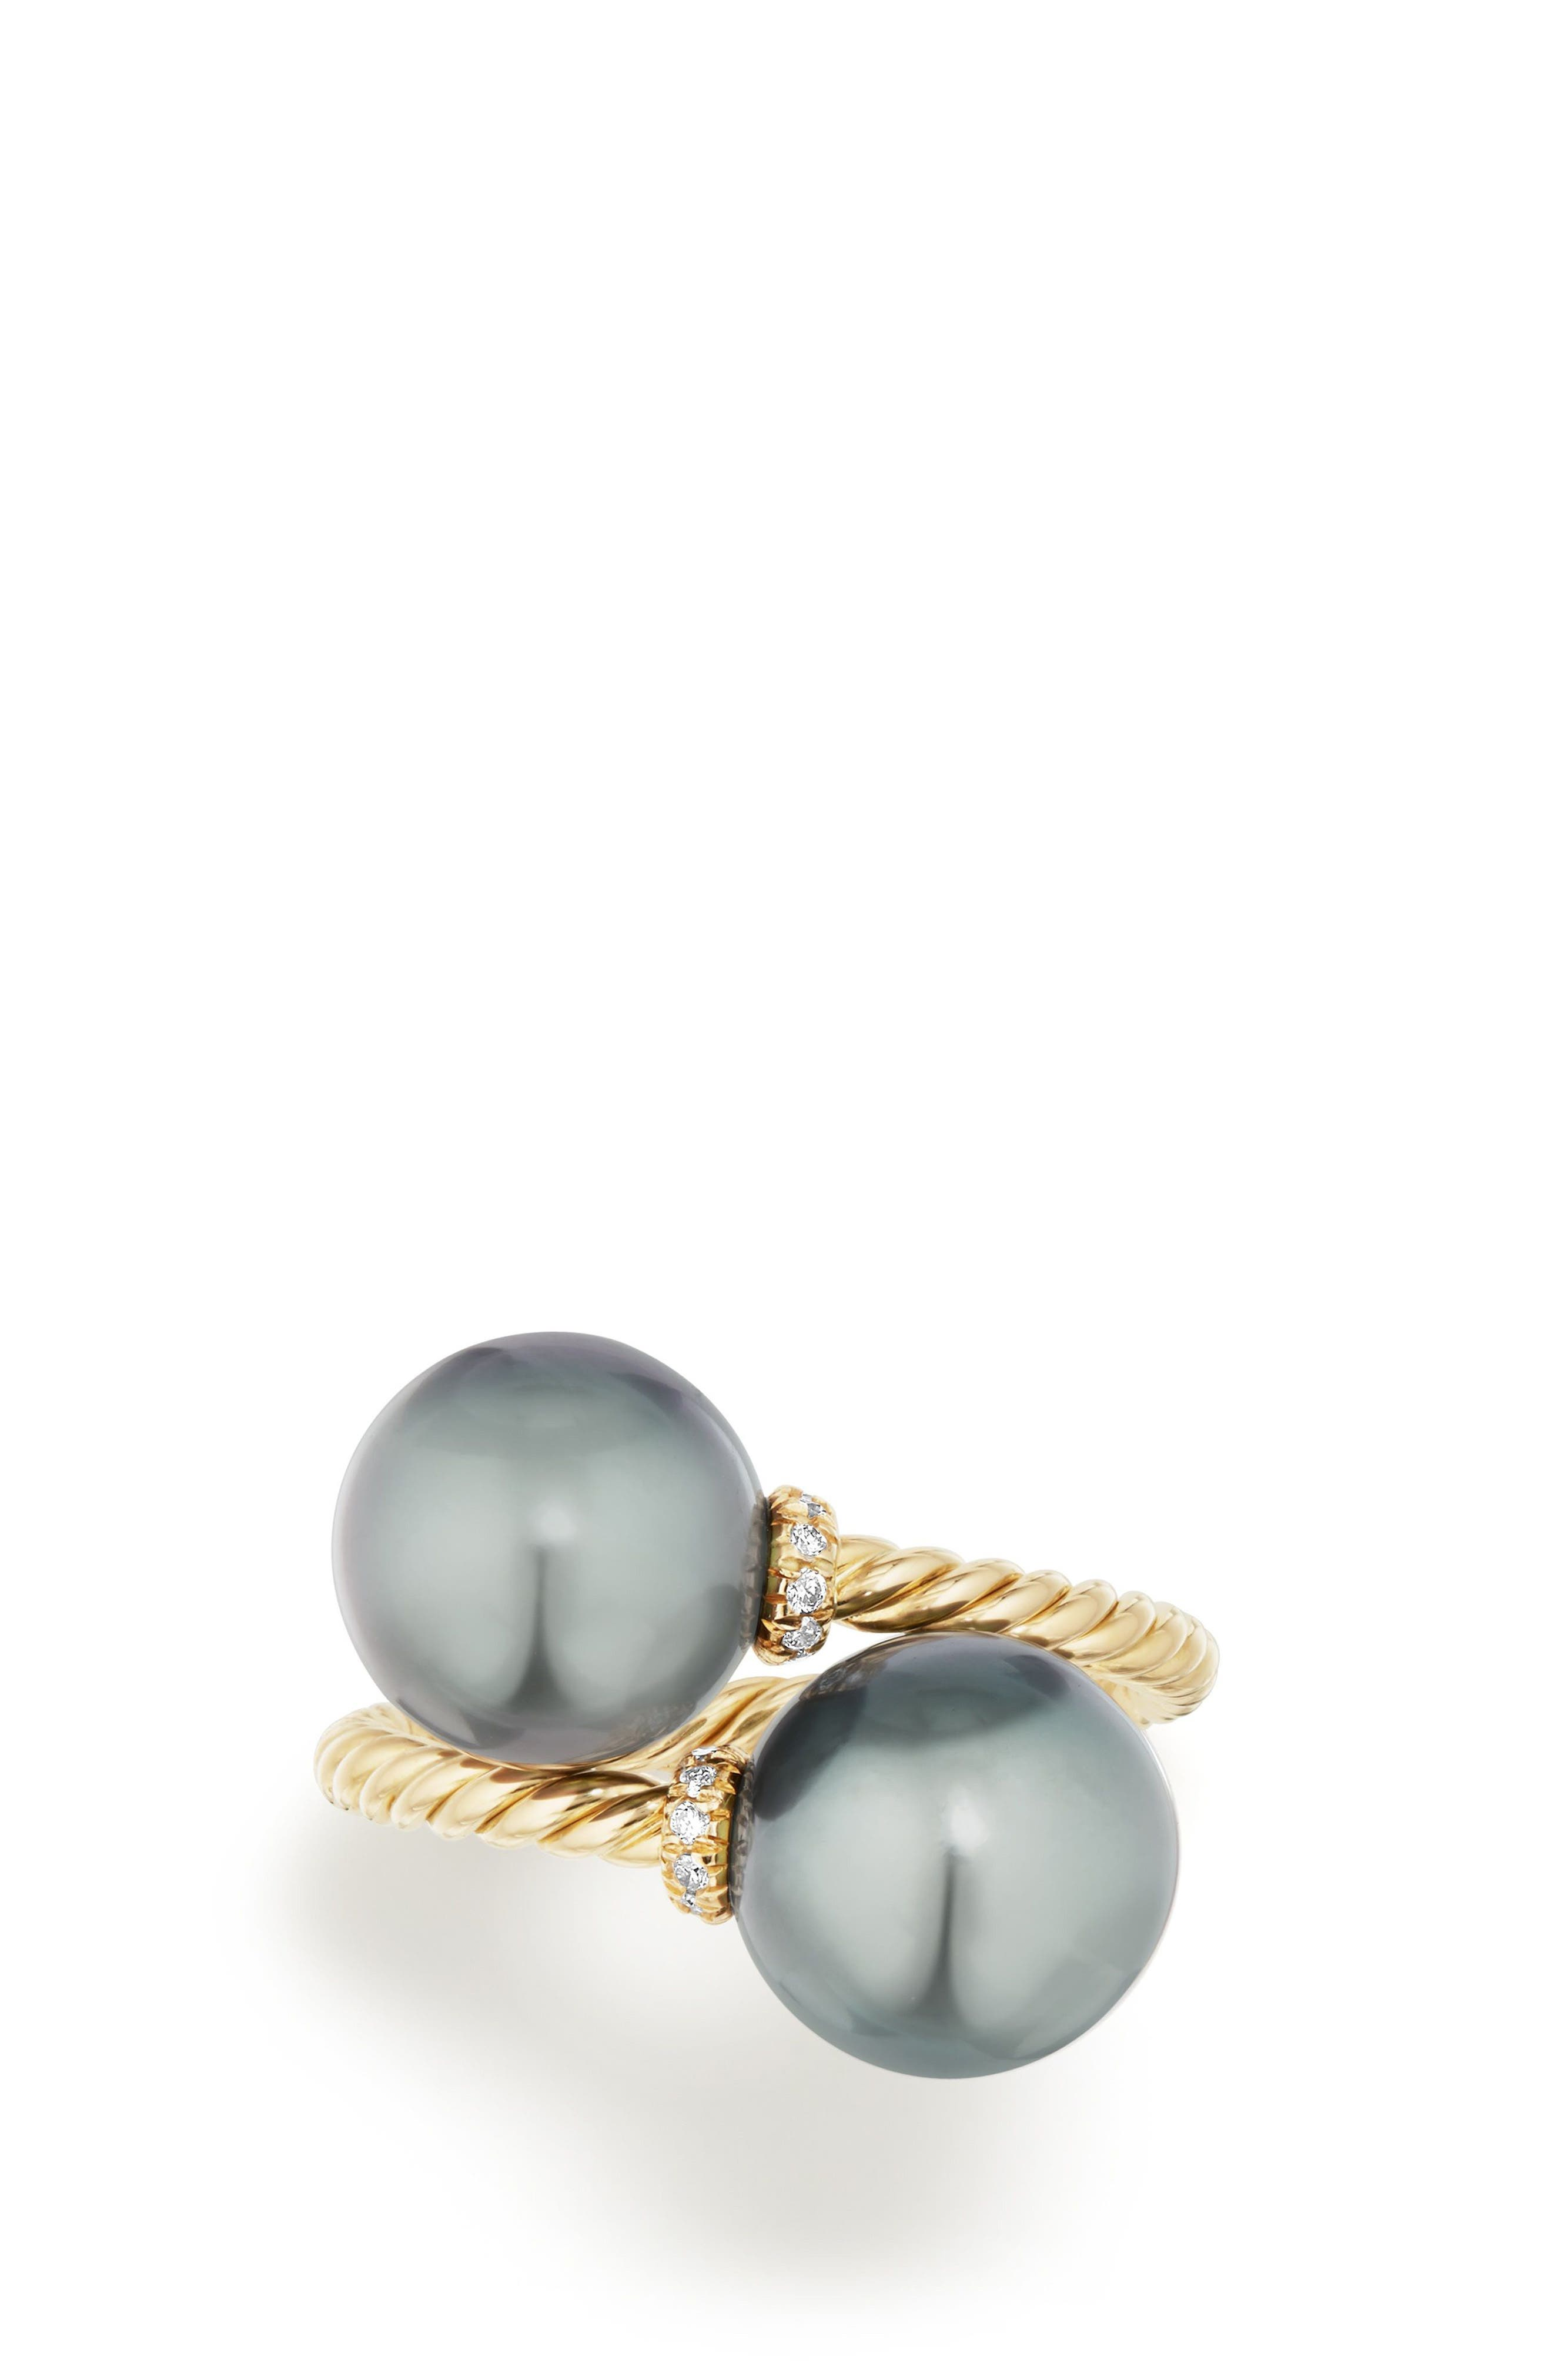 Solari Bypass Ring with Diamond in 18K Gold,                             Alternate thumbnail 3, color,                             GOLD/ DIAMOND/ GREY PEARL